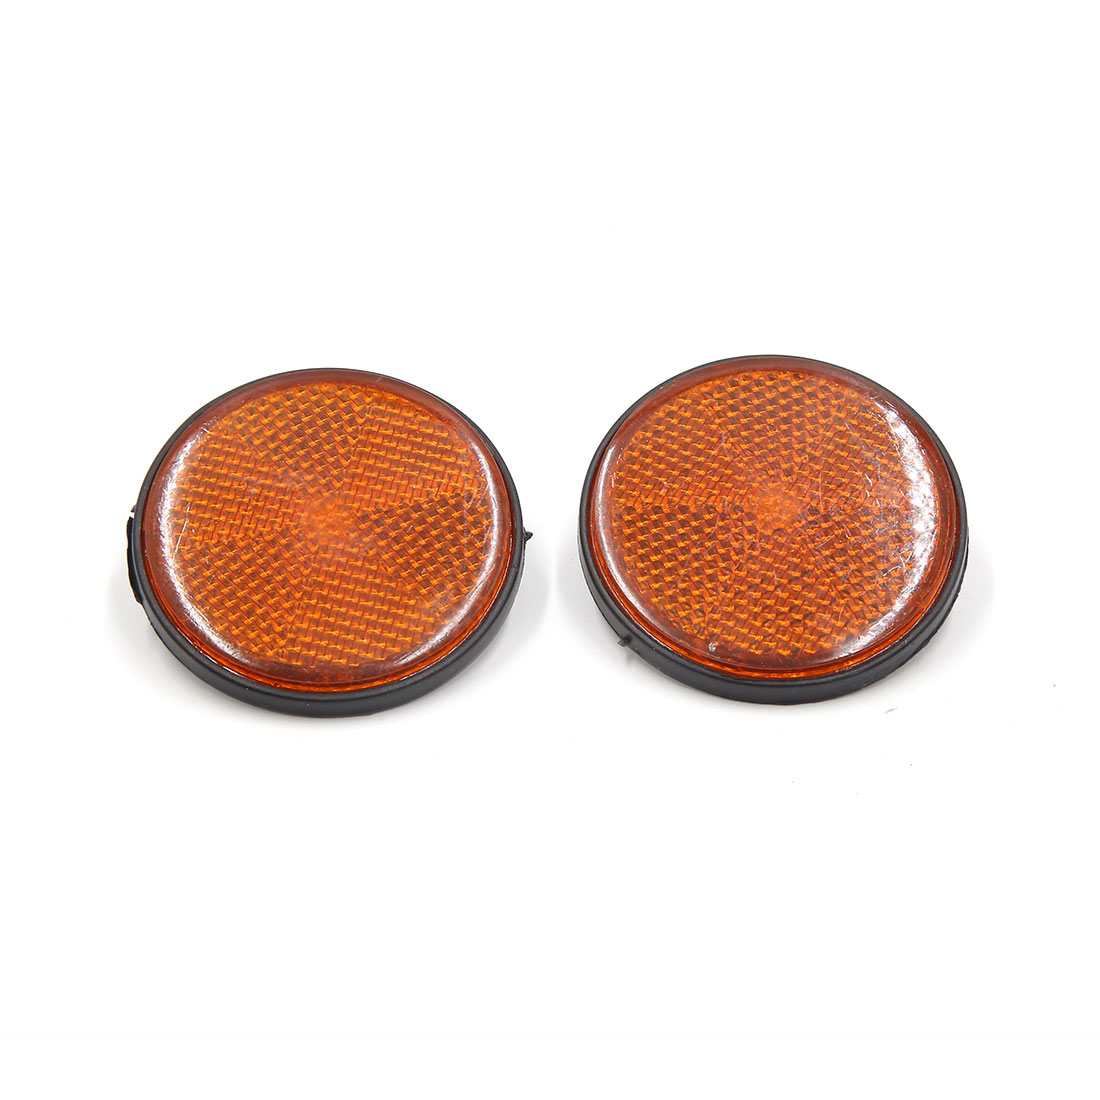 Pair 56mm Dia Plastic Round Reflective Warning Plate Reflector for Motorcycle